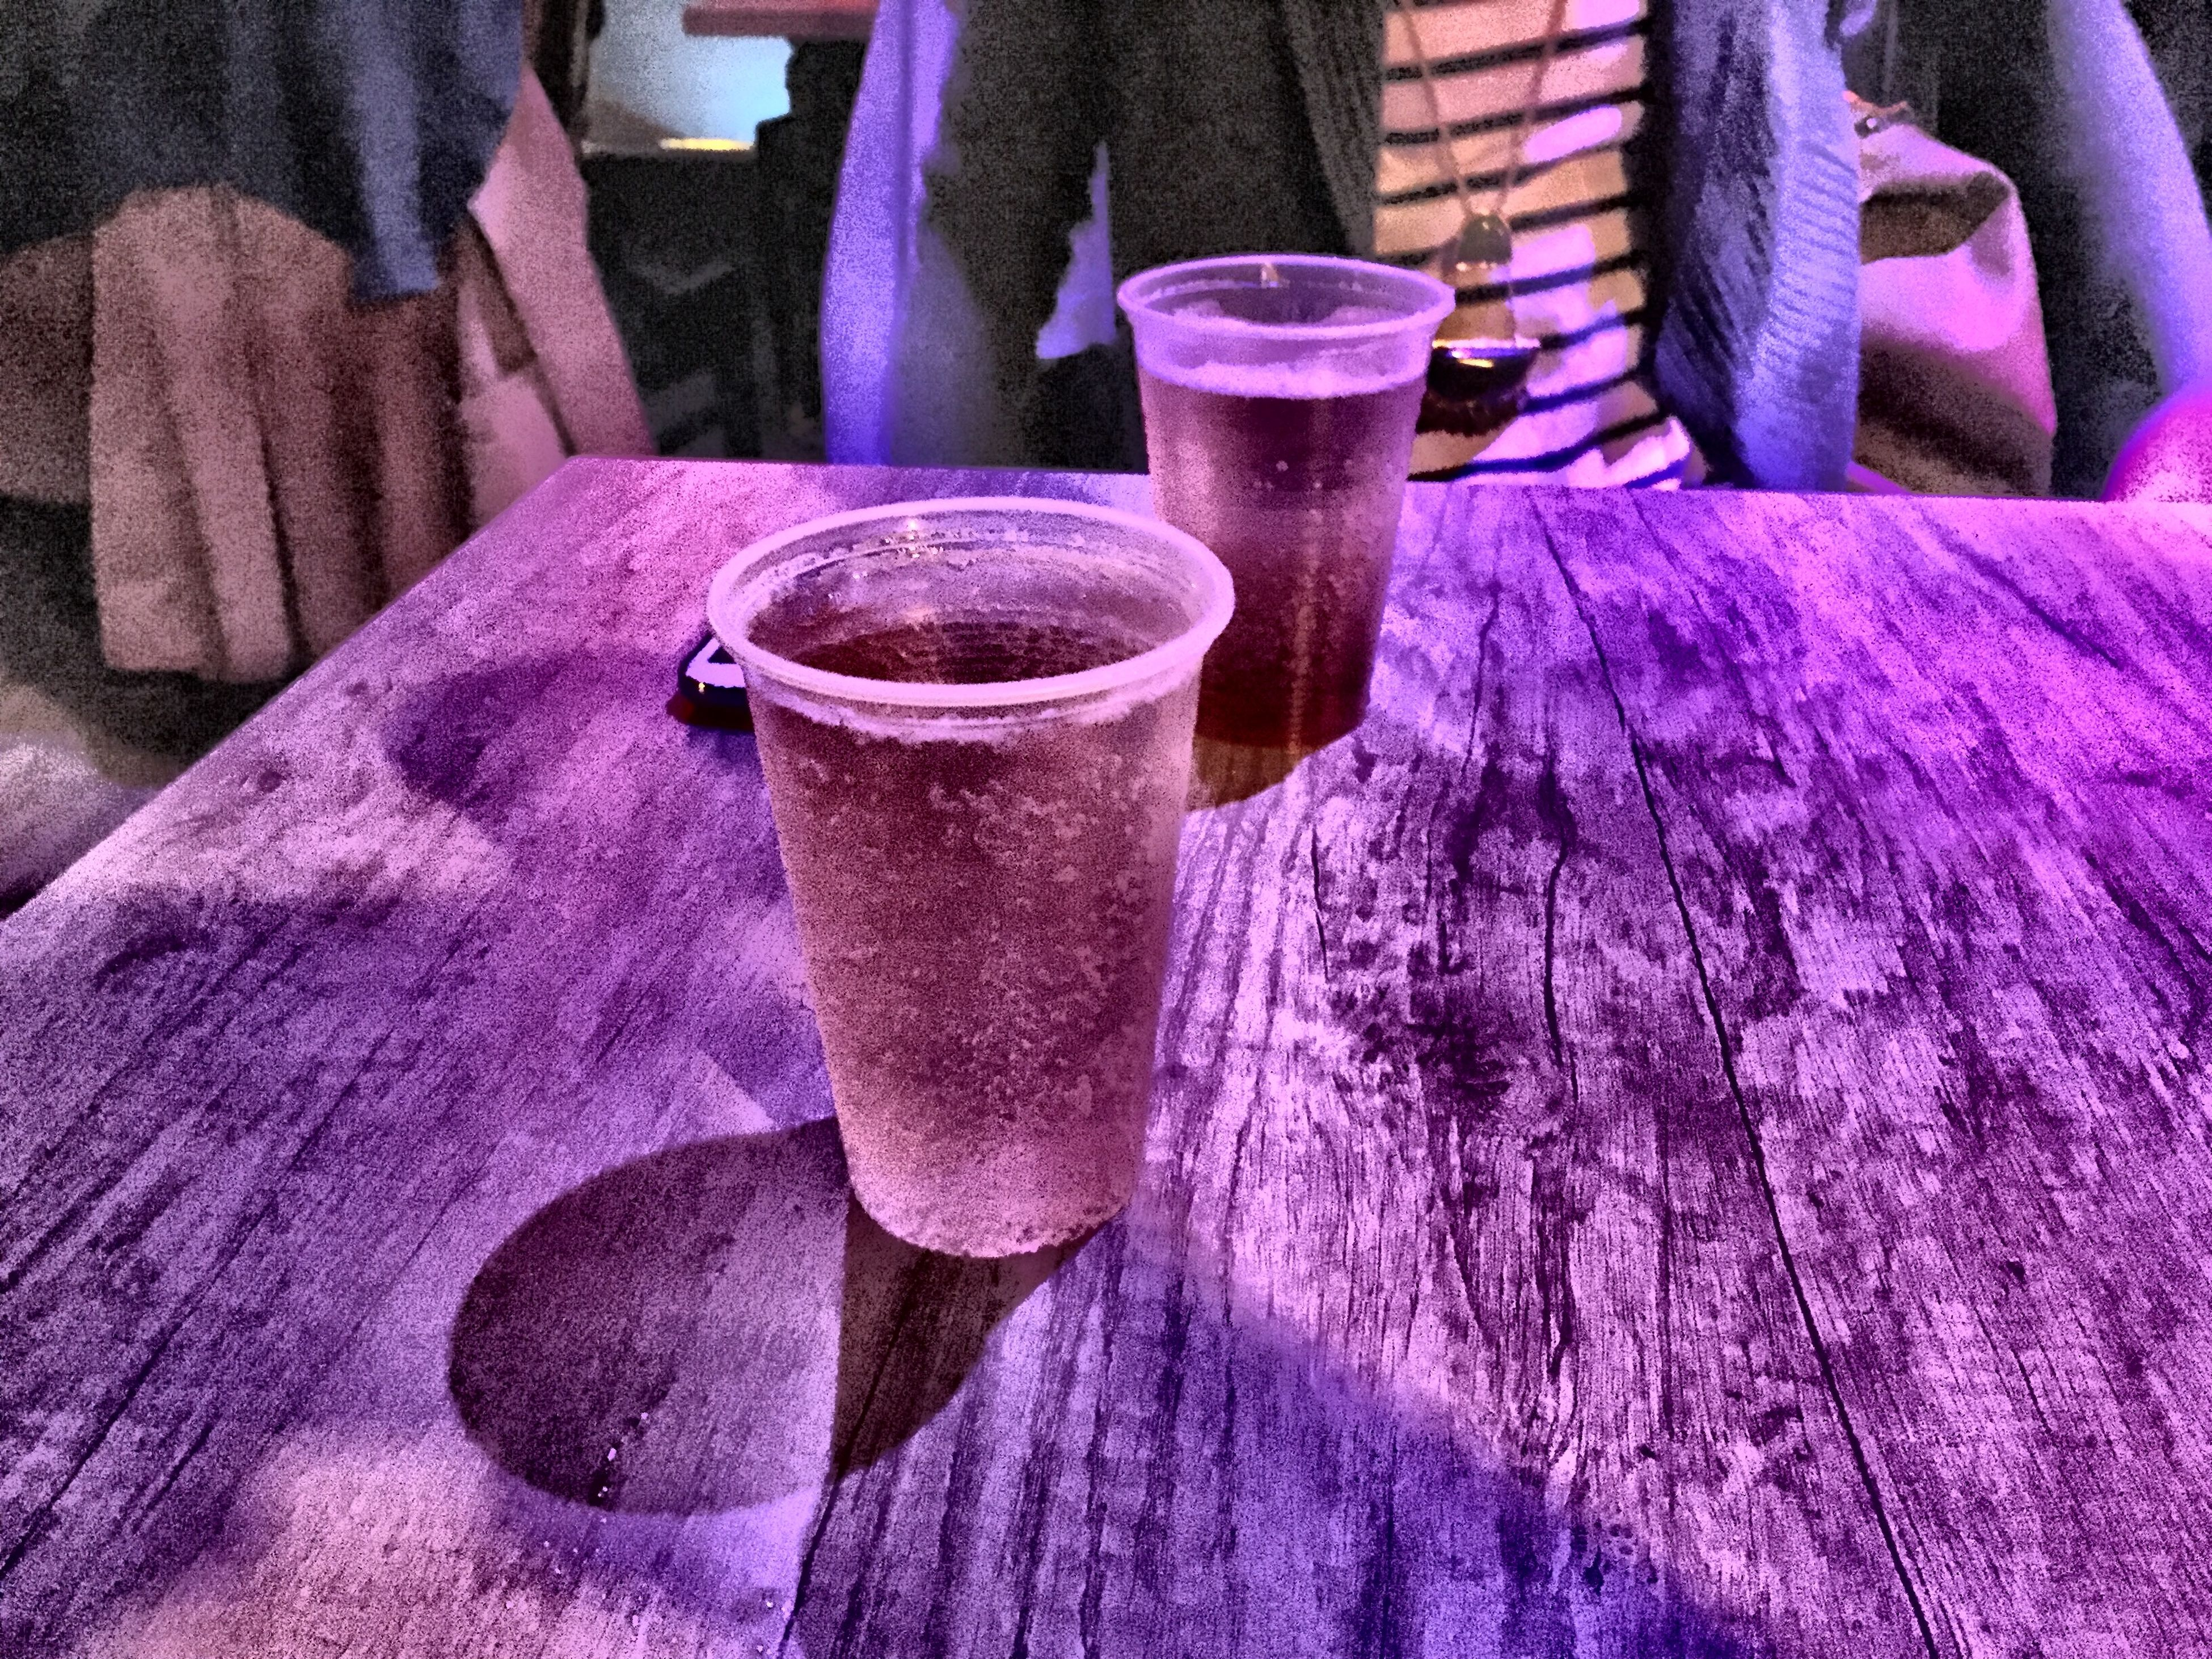 indoors, still life, close-up, food and drink, table, freshness, drink, high angle view, refreshment, textile, wood - material, low section, blue, fabric, drinking glass, no people, wooden, person, part of, selective focus